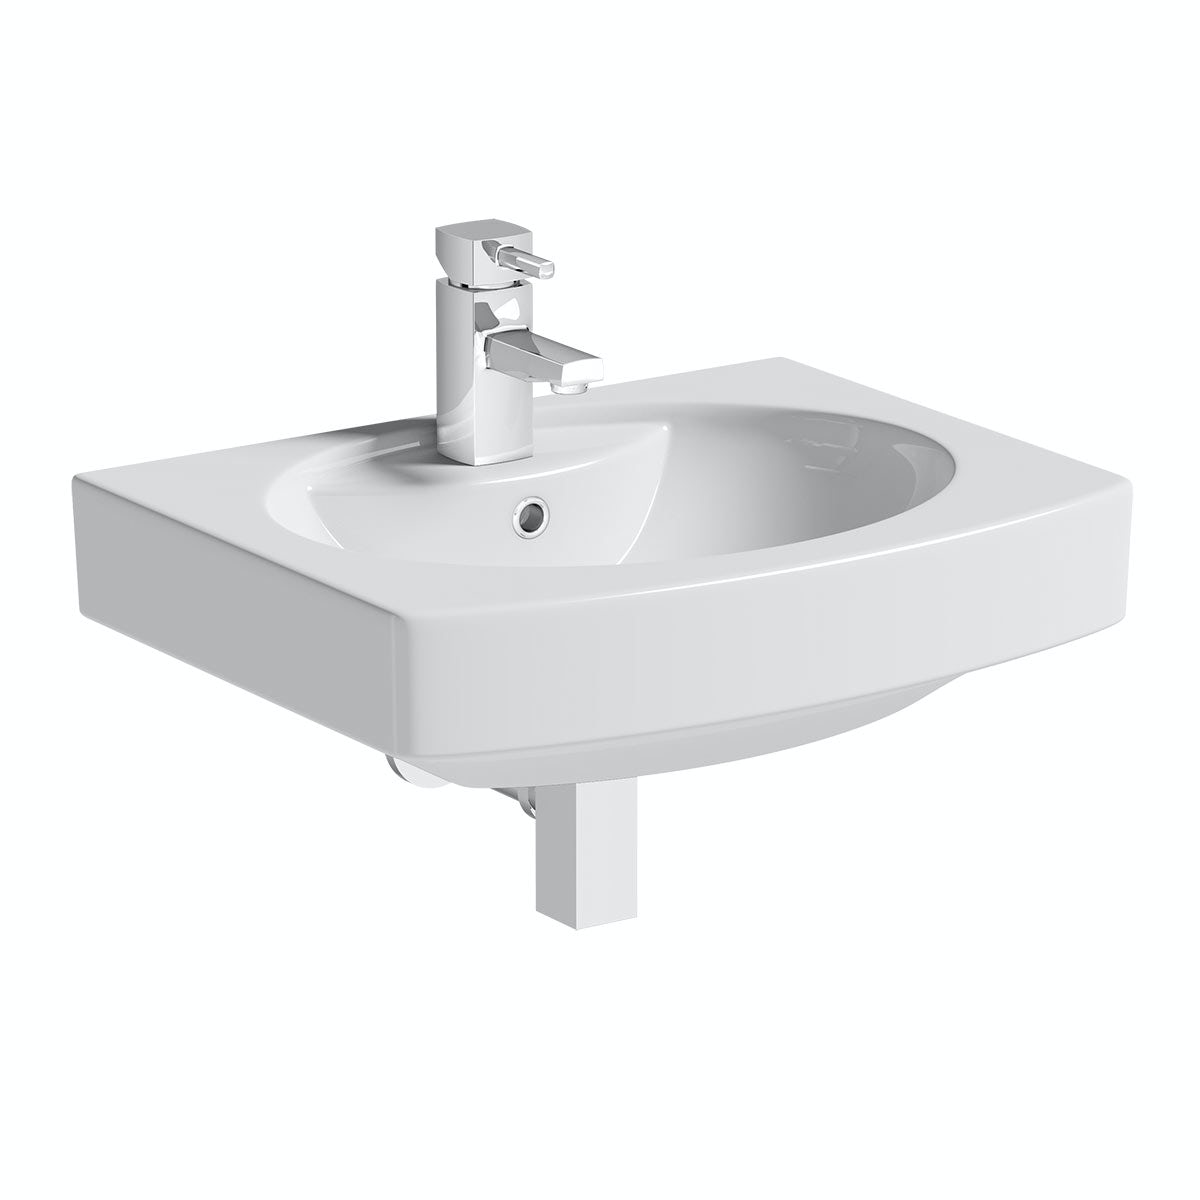 Orchard Vermont 1 tap hole wall hung basin 555mm